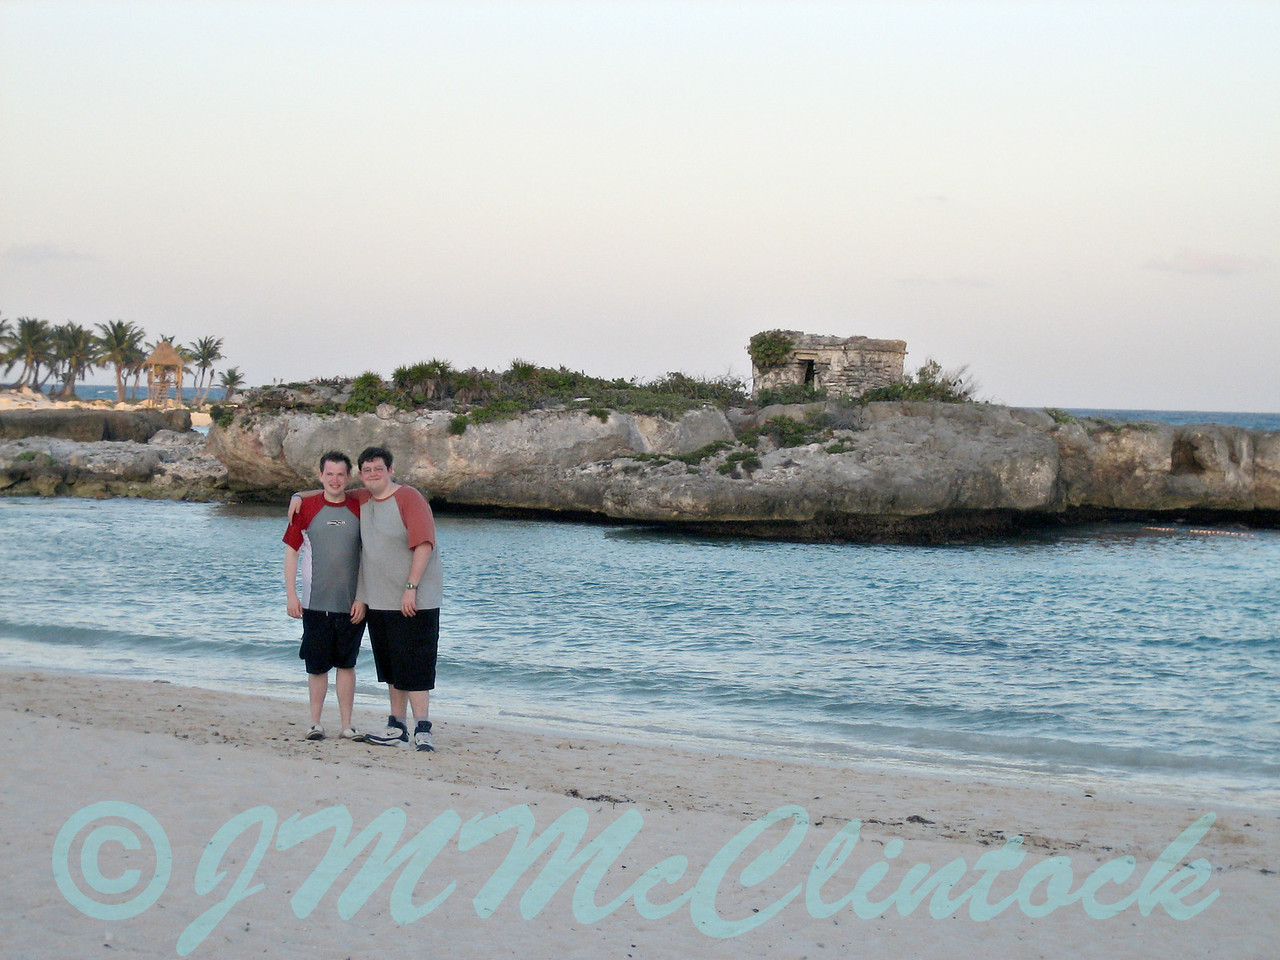 James and Stephen on the beach.  The ruins of  Spanish lookout building is on the little island in the background.